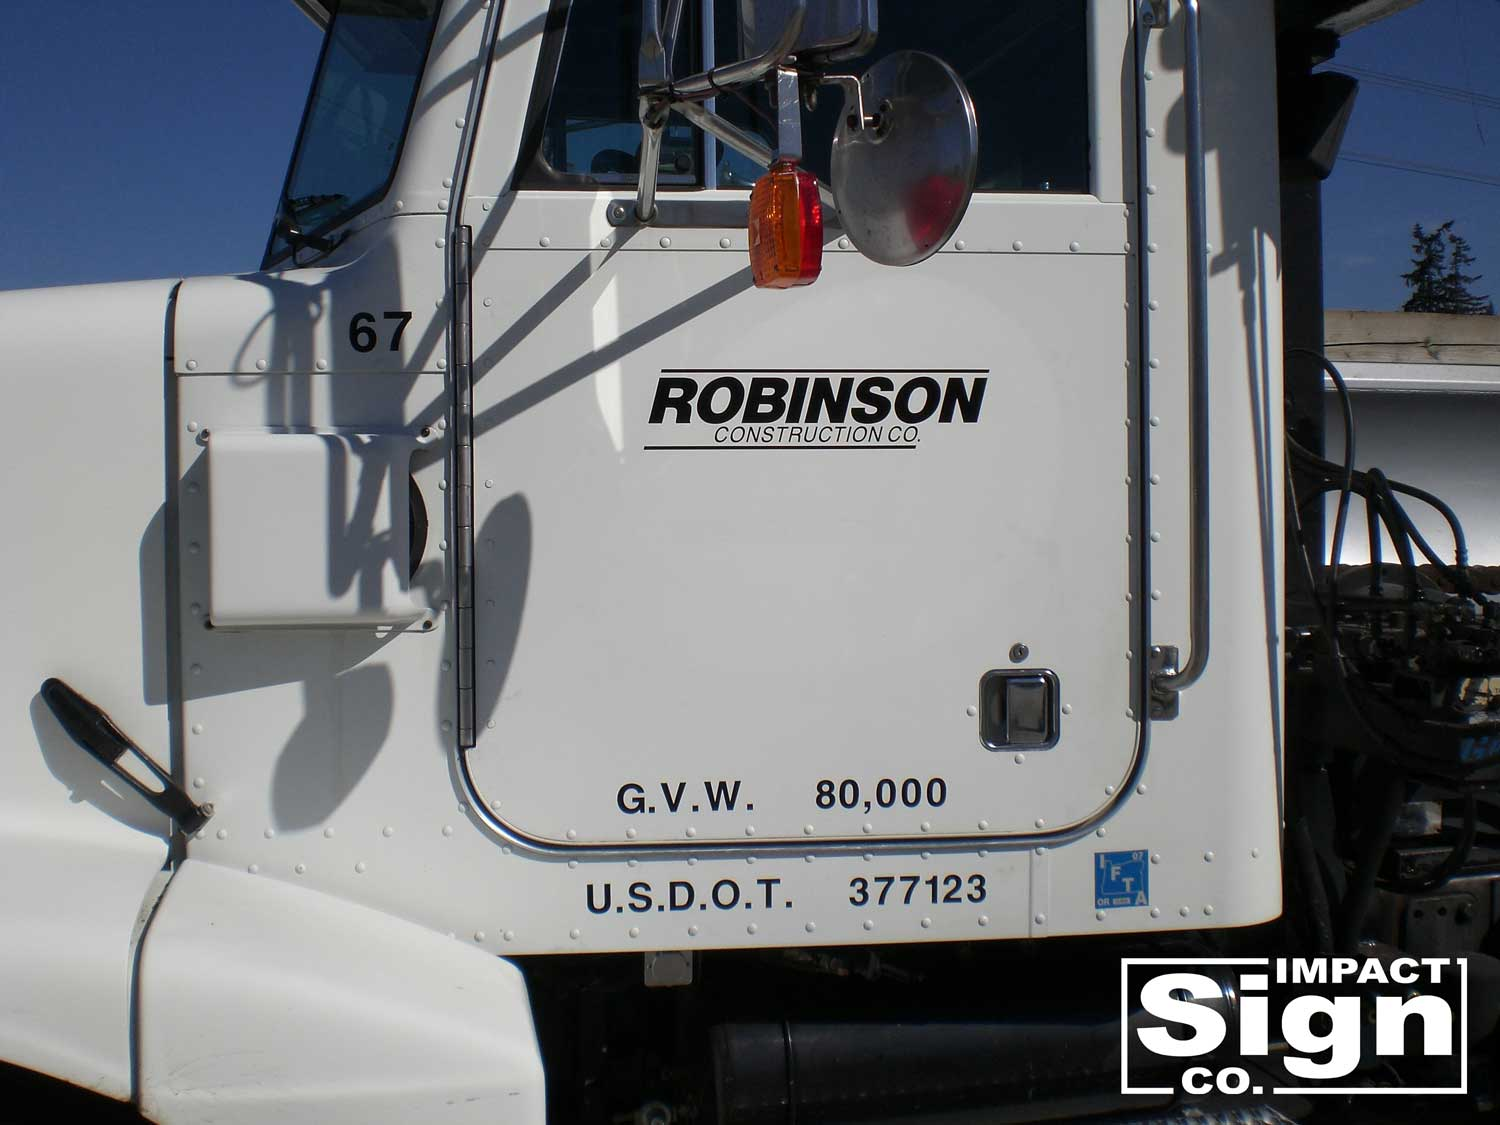 Robinson Construction Truck Decals